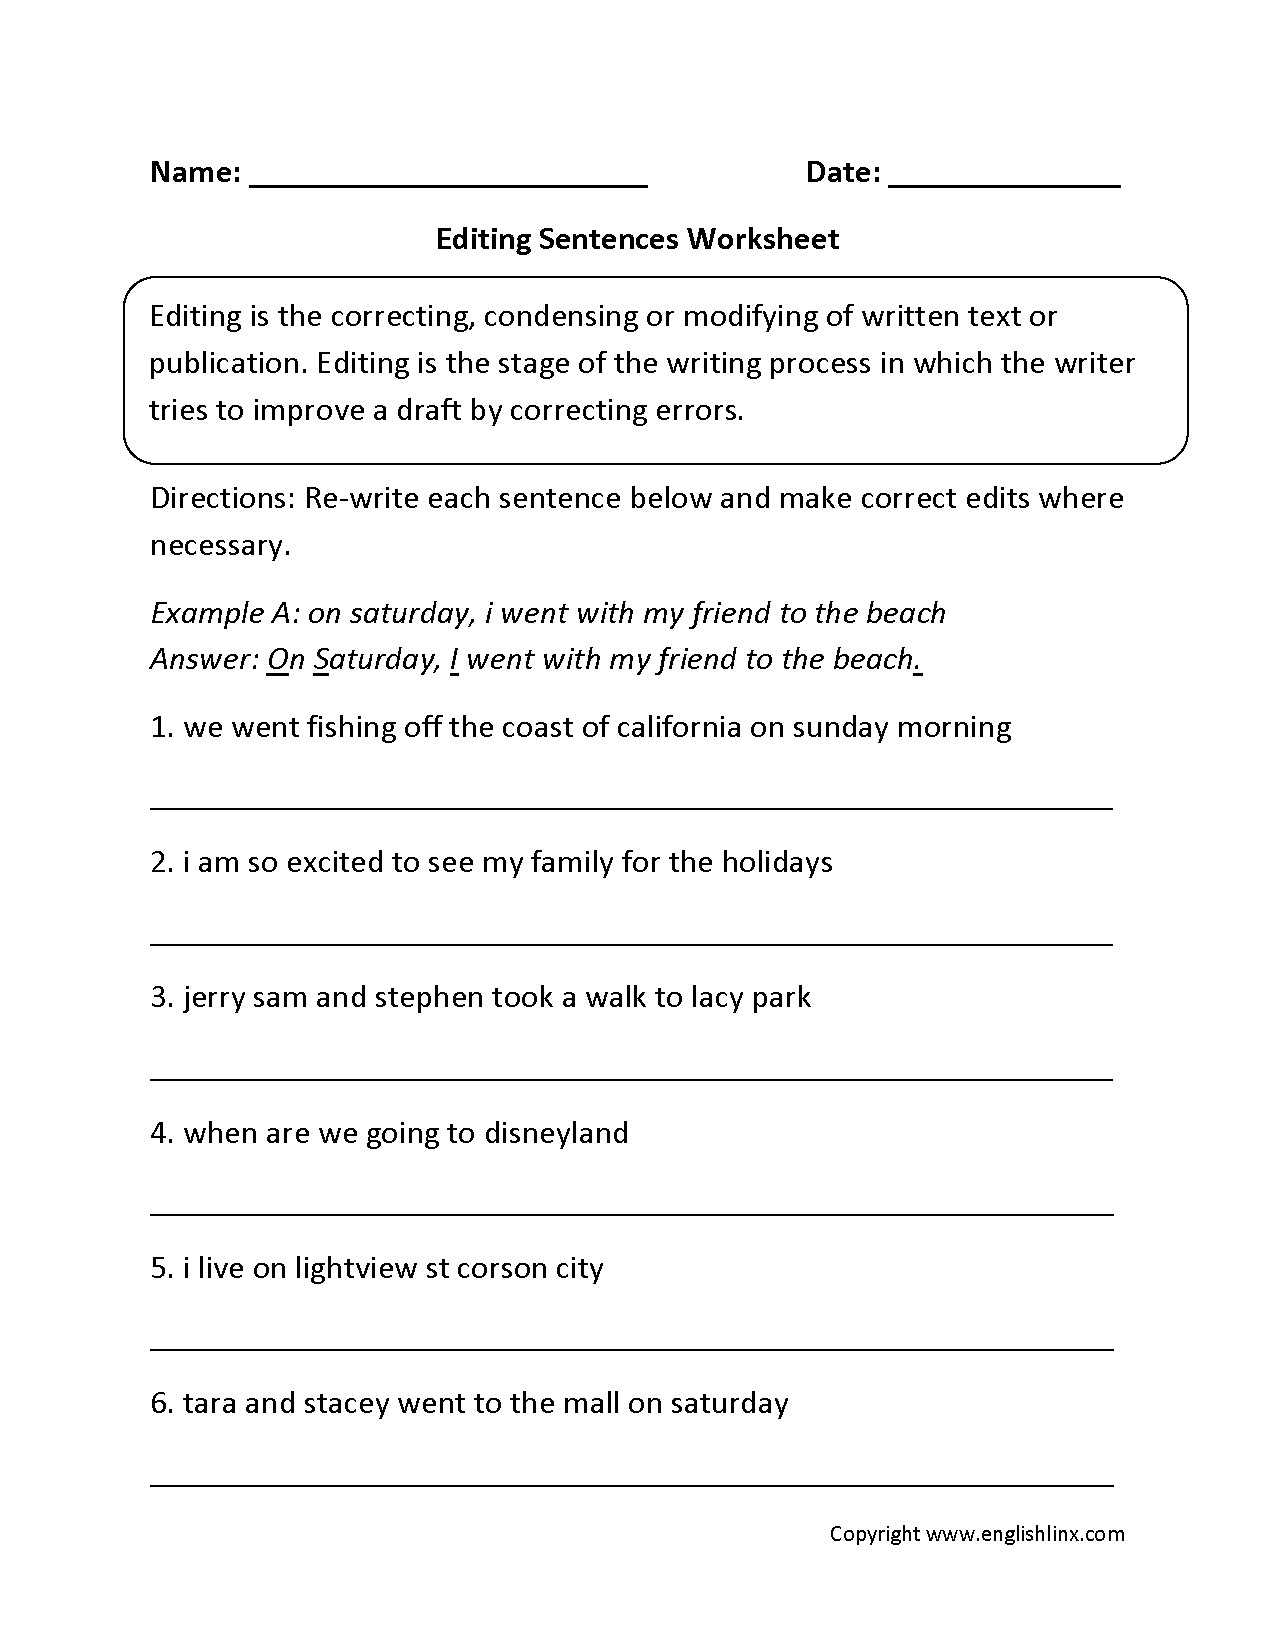 Paragraph Editing Worksheets 4th Grade Editing Worksheet Sentece